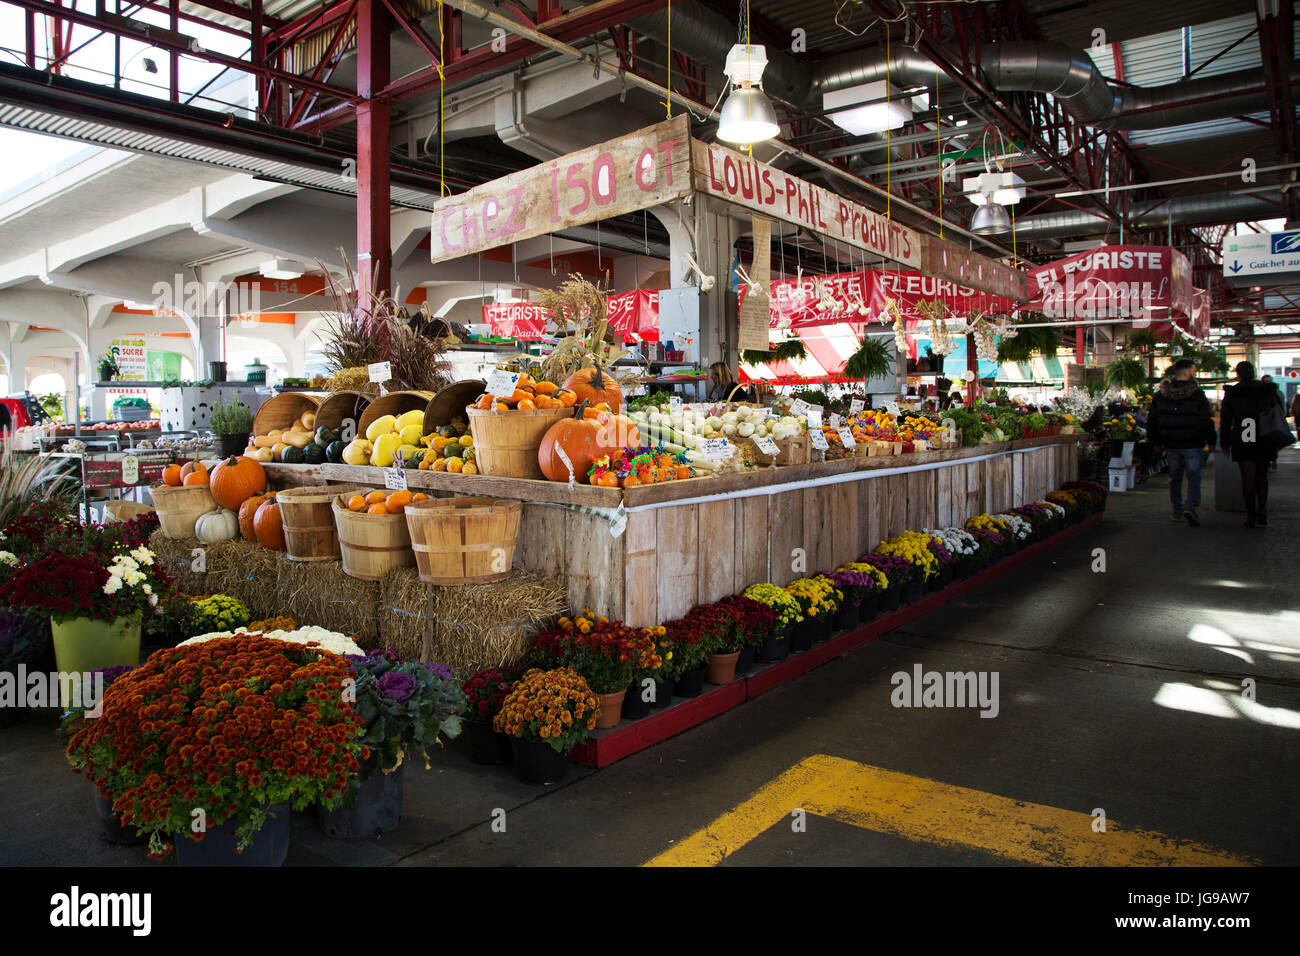 A greengrocer's stall at Jean-Talon Market in the Little Italy district of Montreal, Canada. - Stock Image